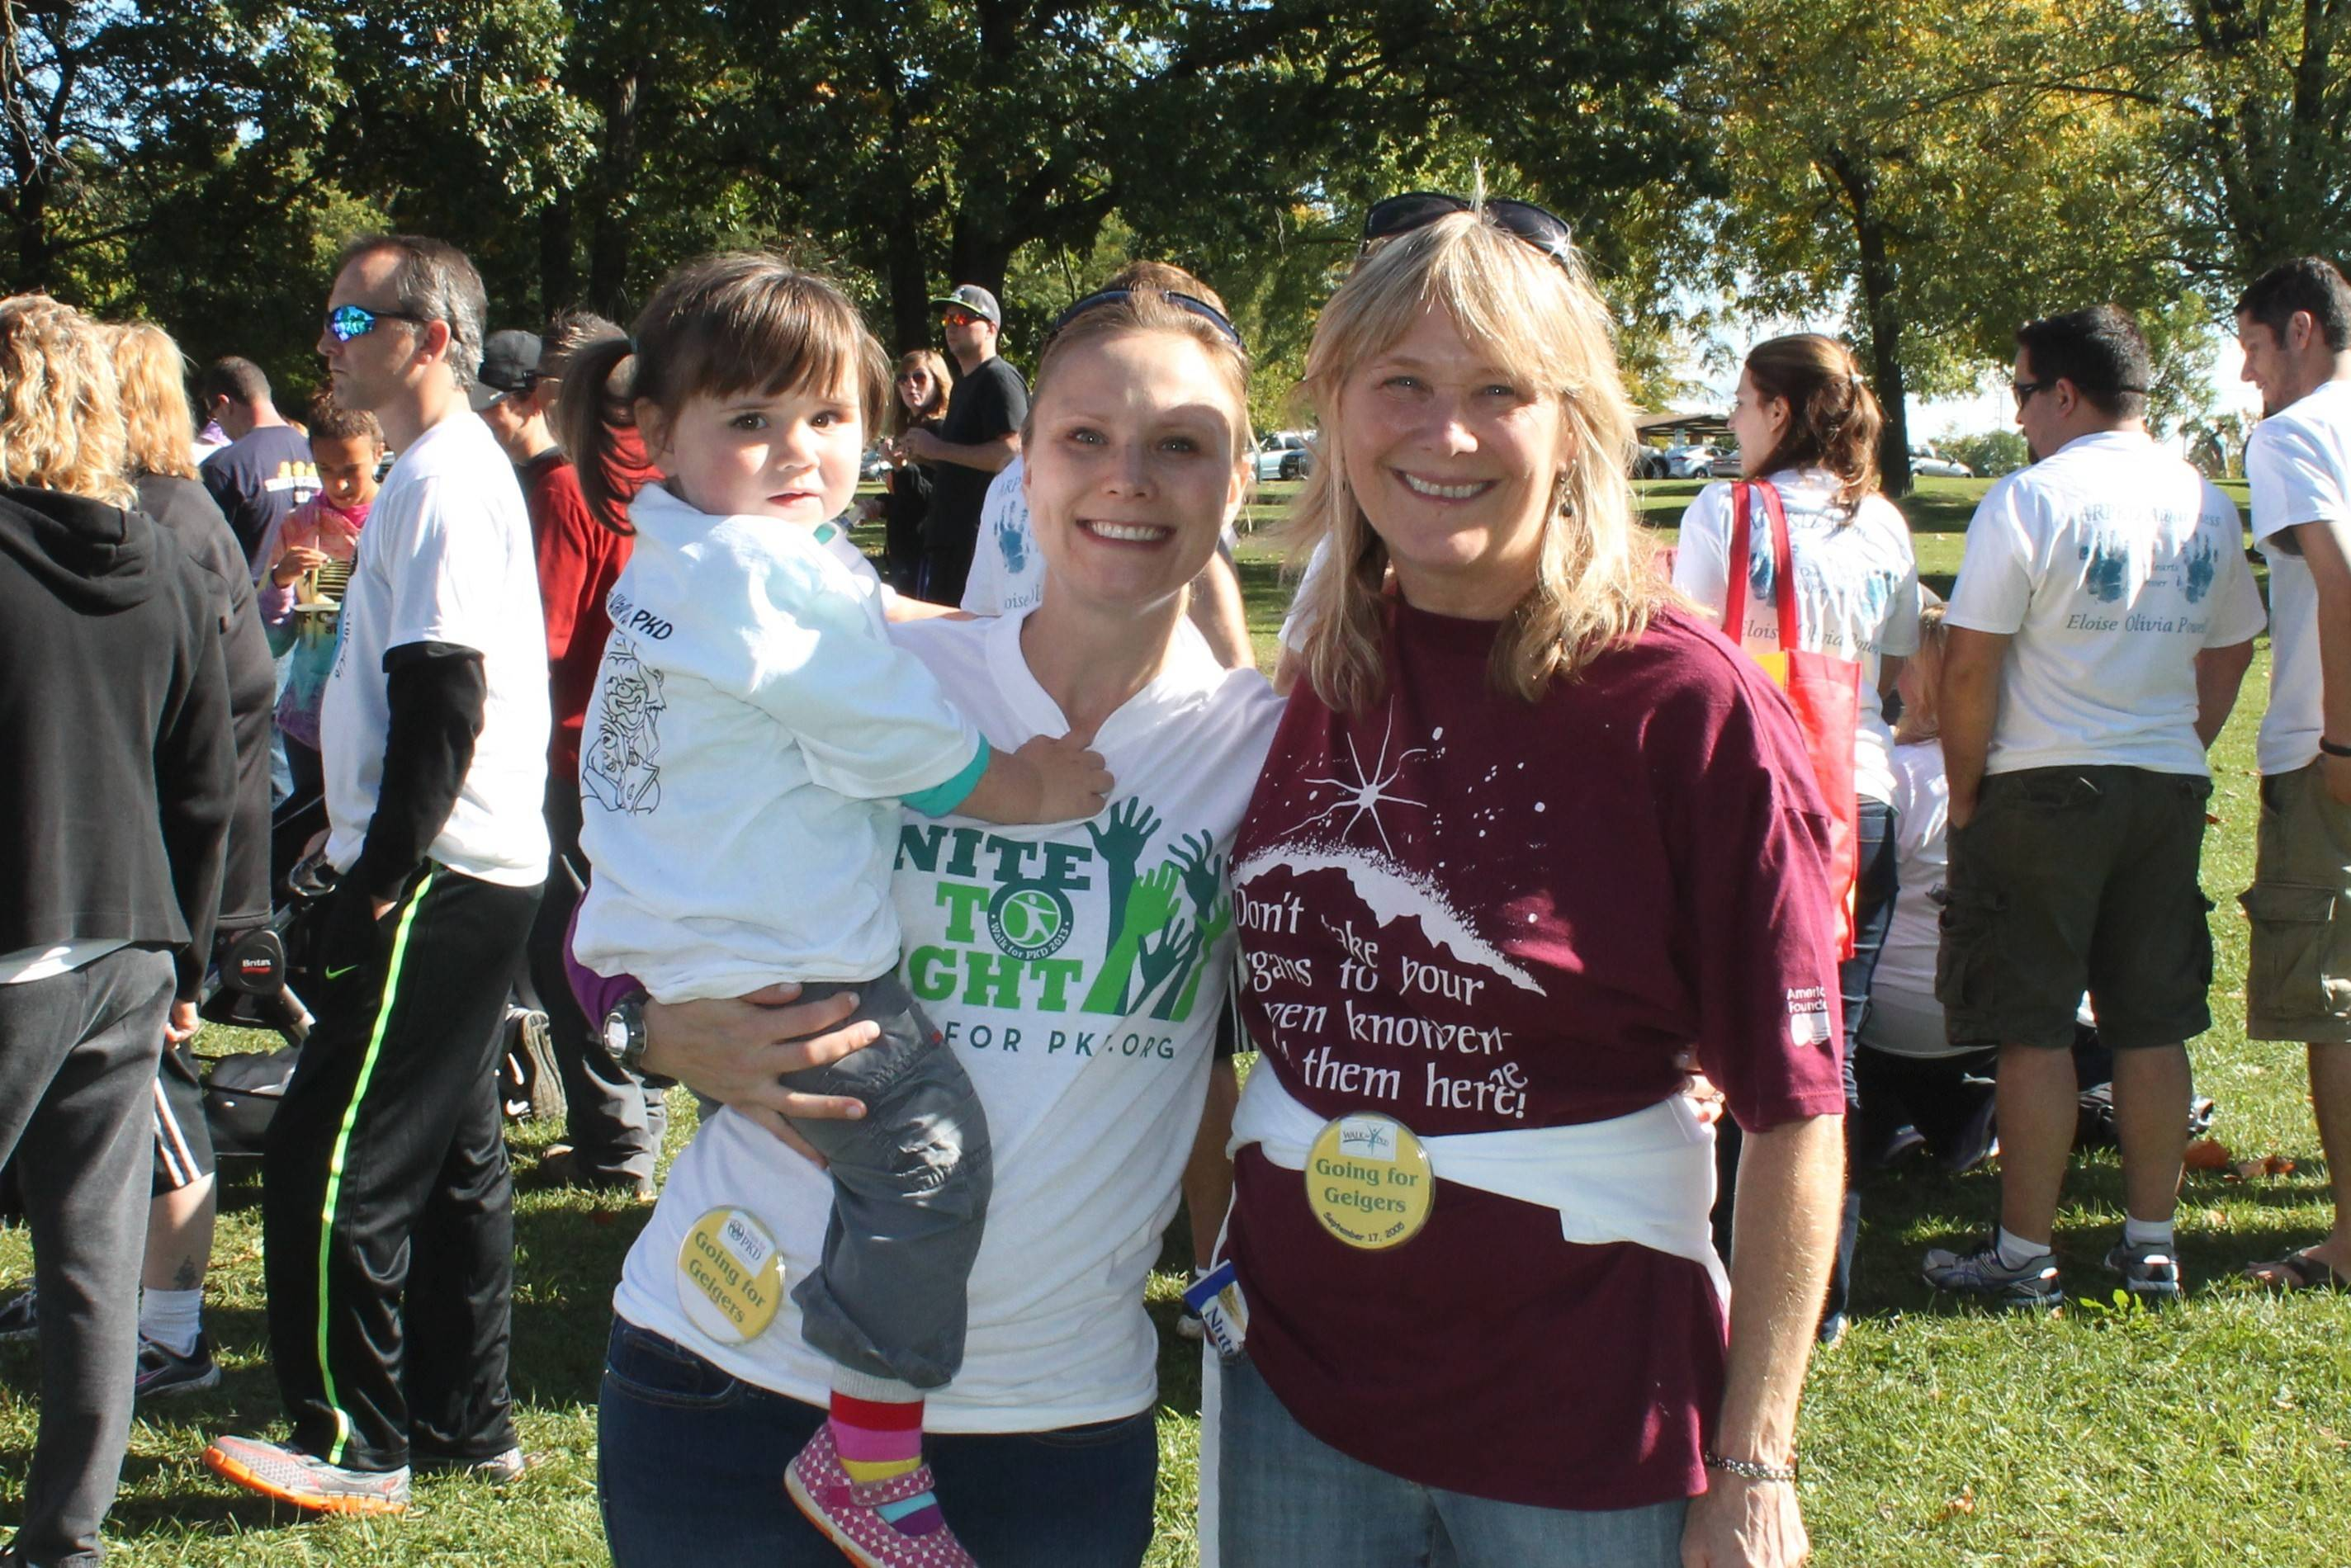 Amy Manelli holds her daughter Quinn while with her mom, Laurie Geiger, at the 2013 Chicago Walk for PKD.